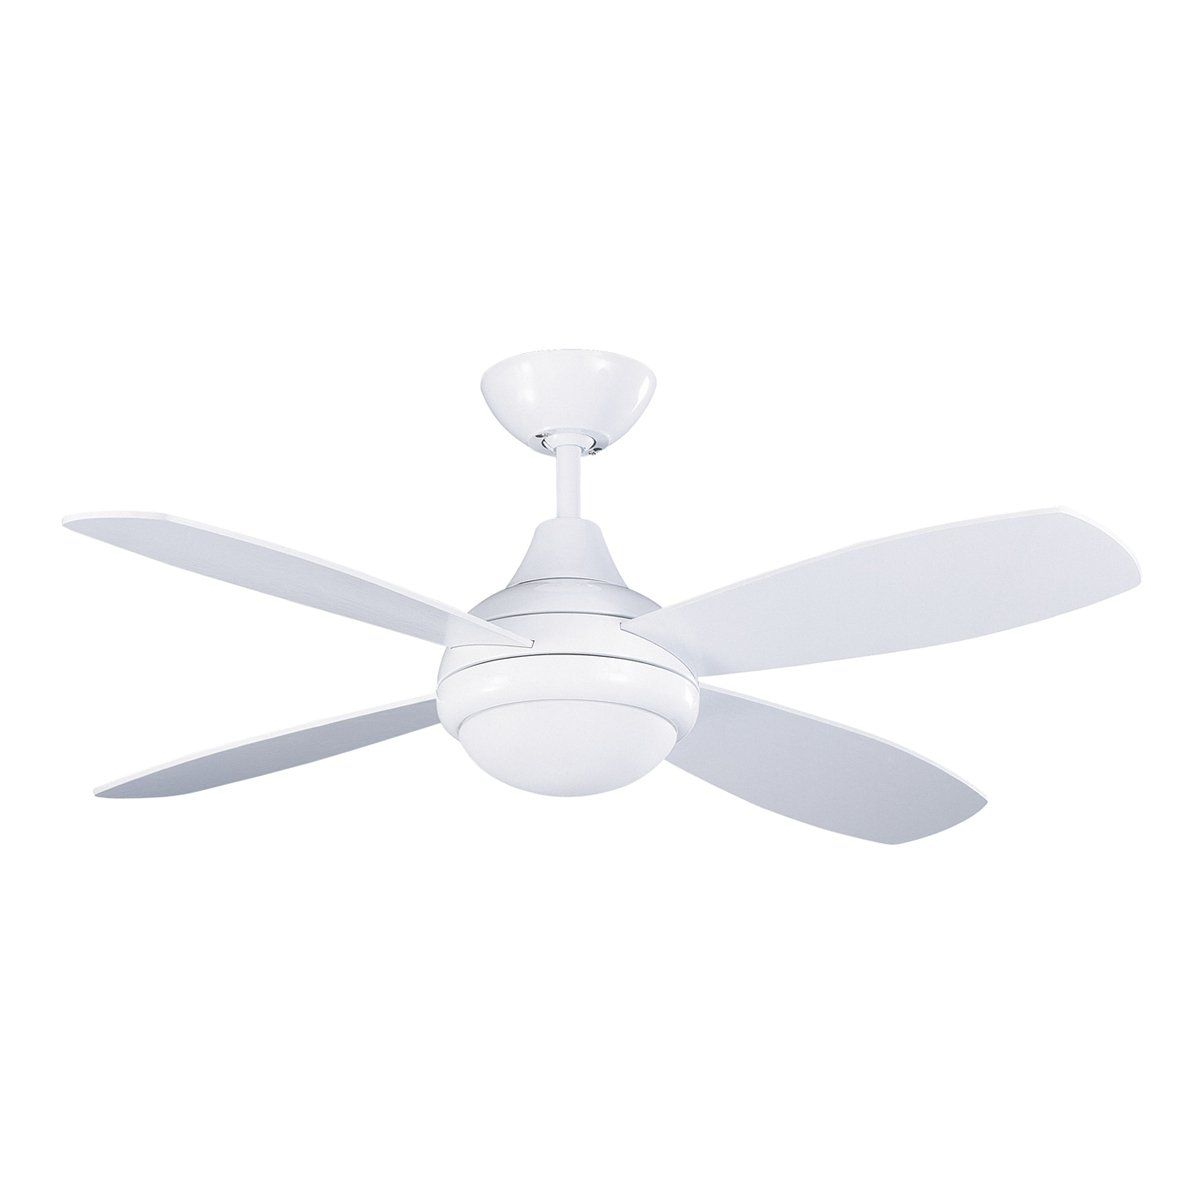 Kendal Lighting Aviator 42 In Copper Bronze 4 Blade Indoor Ceiling Fan With Light Kit And Remote Ceiling Fan With Light Ceiling Fan White Ceiling Fan